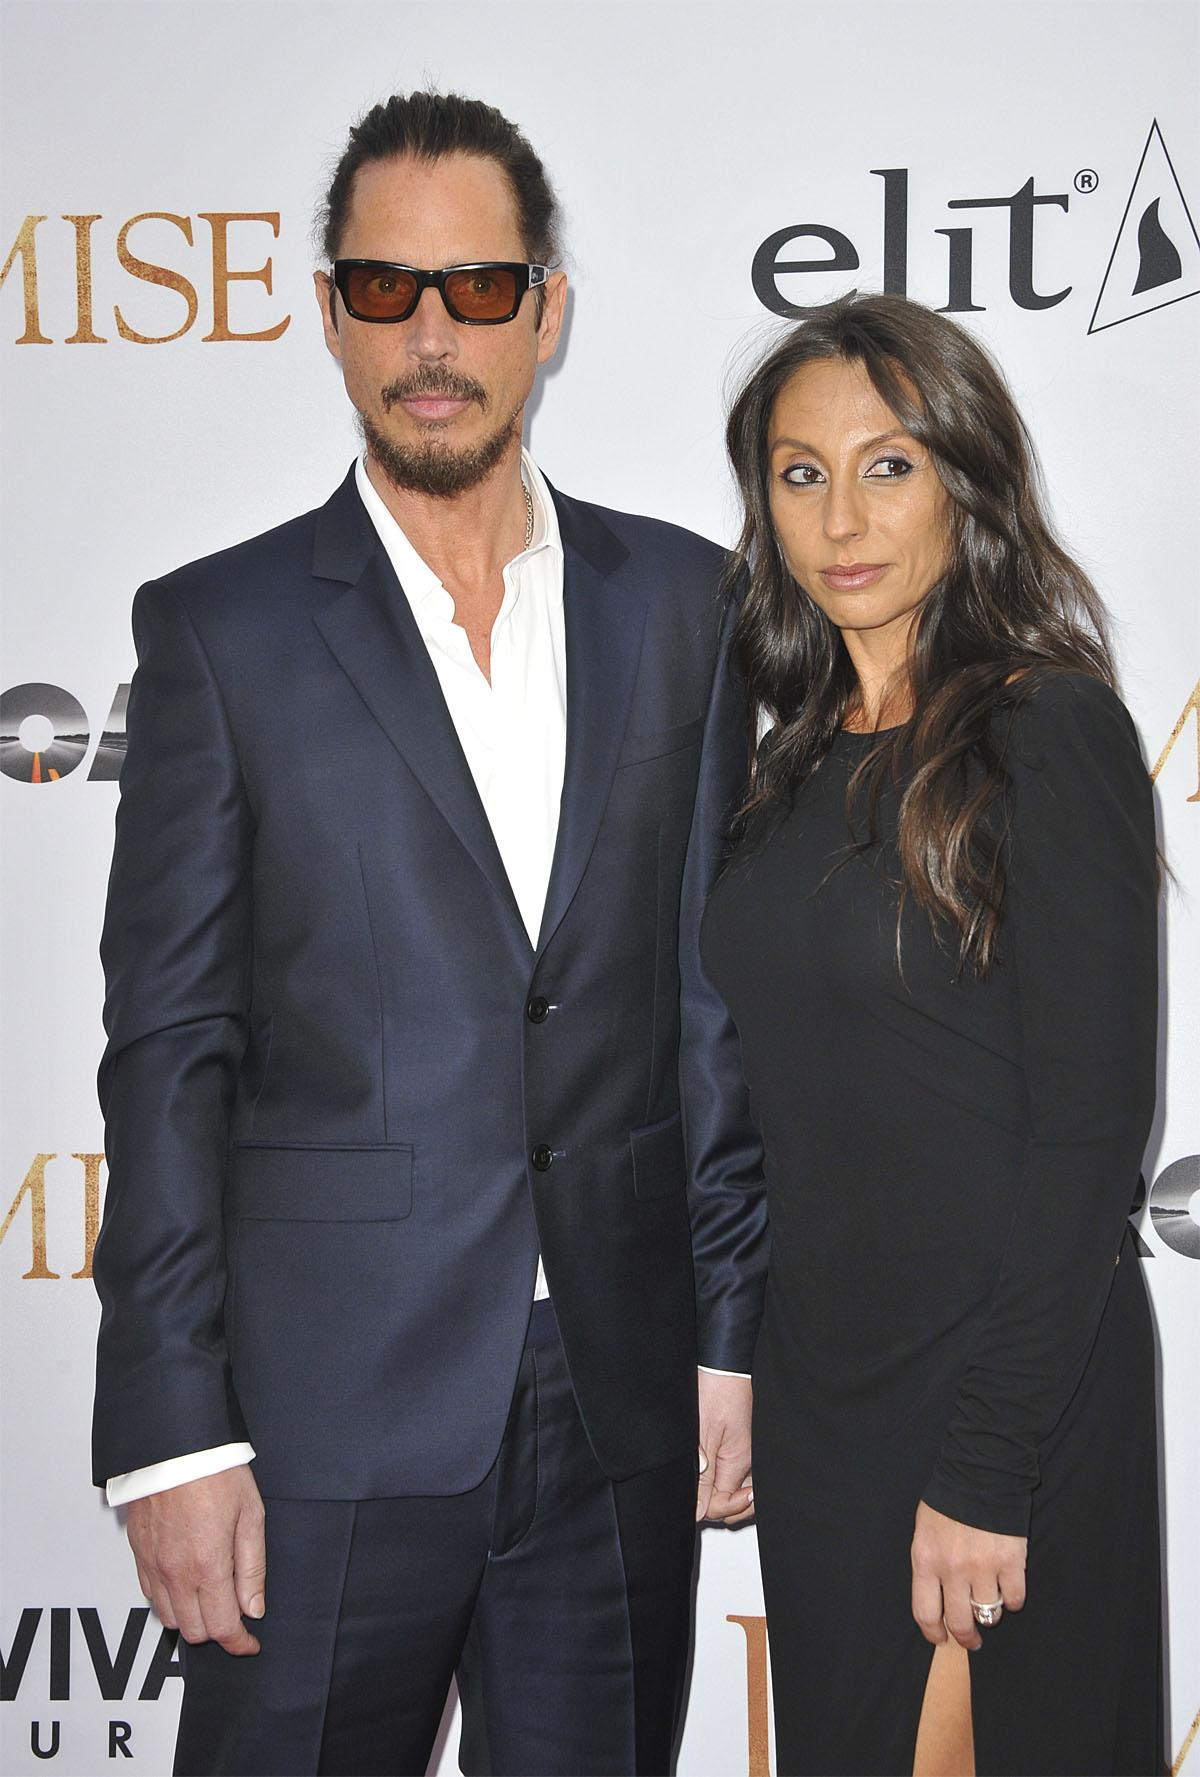 Film Premiere The Promise  Featuring: Chris Cornell, Vicky Karayiann Where: Los Angeles, California, United States When: 13 Apr 2017 Credit: Apega/WENN.com